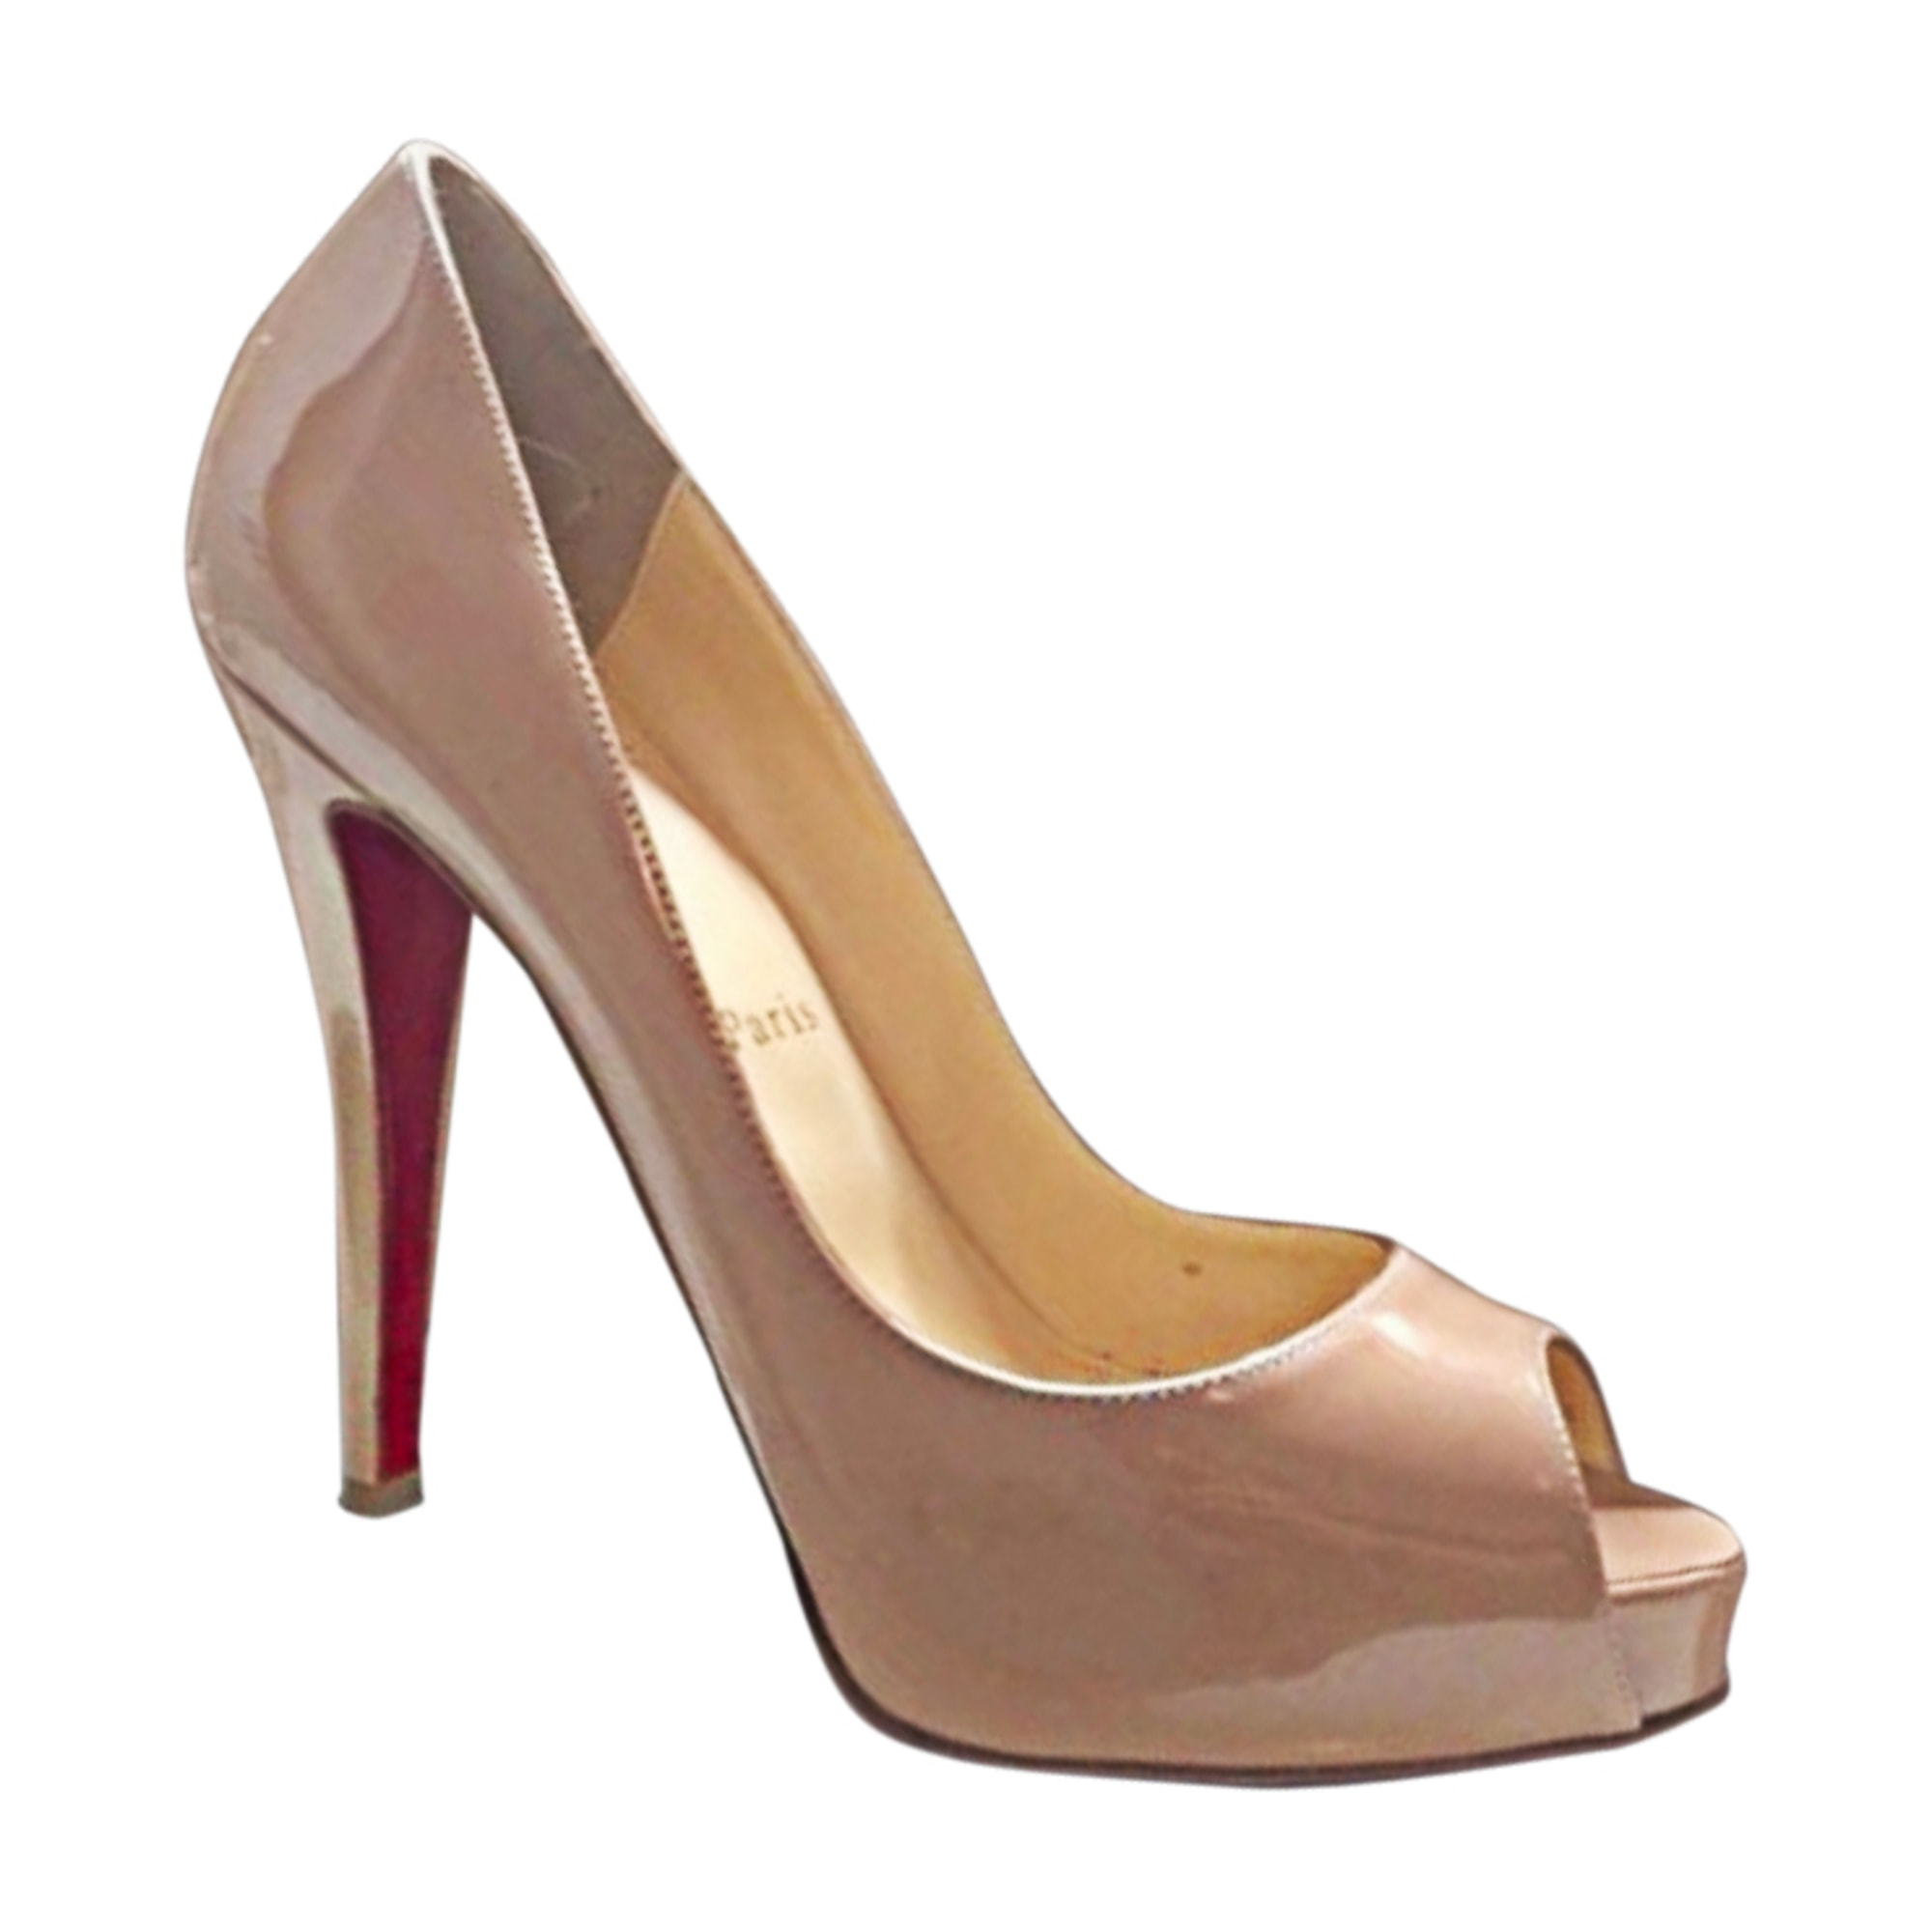 Peep-Toe Pumps CHRISTIAN LOUBOUTIN Very Prive Beige, camel